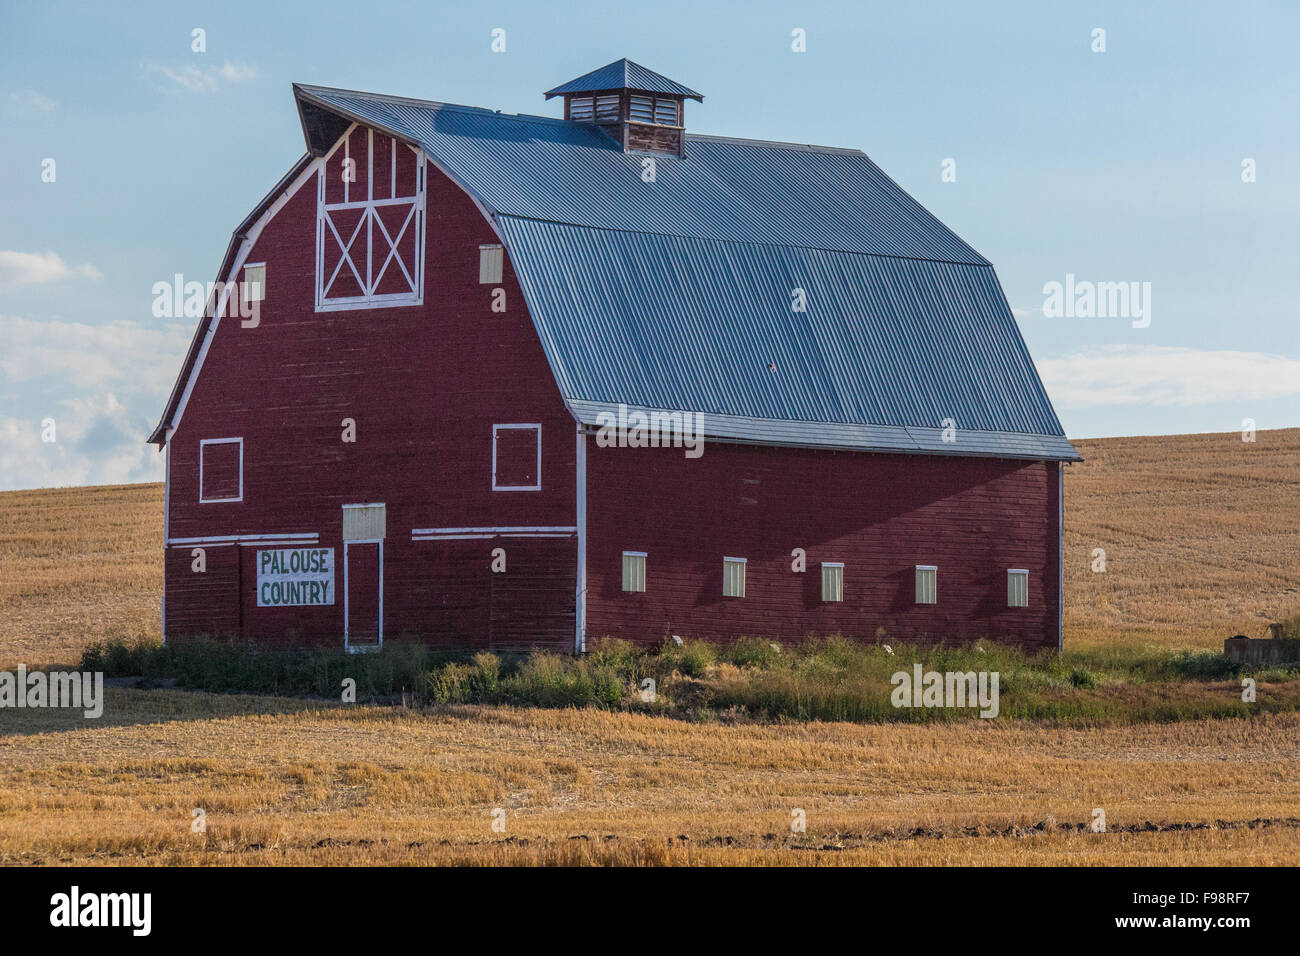 Red Barn Hip Roof In Rural Pasture Land Of Palouse Washington Sign Stock Photo Alamy